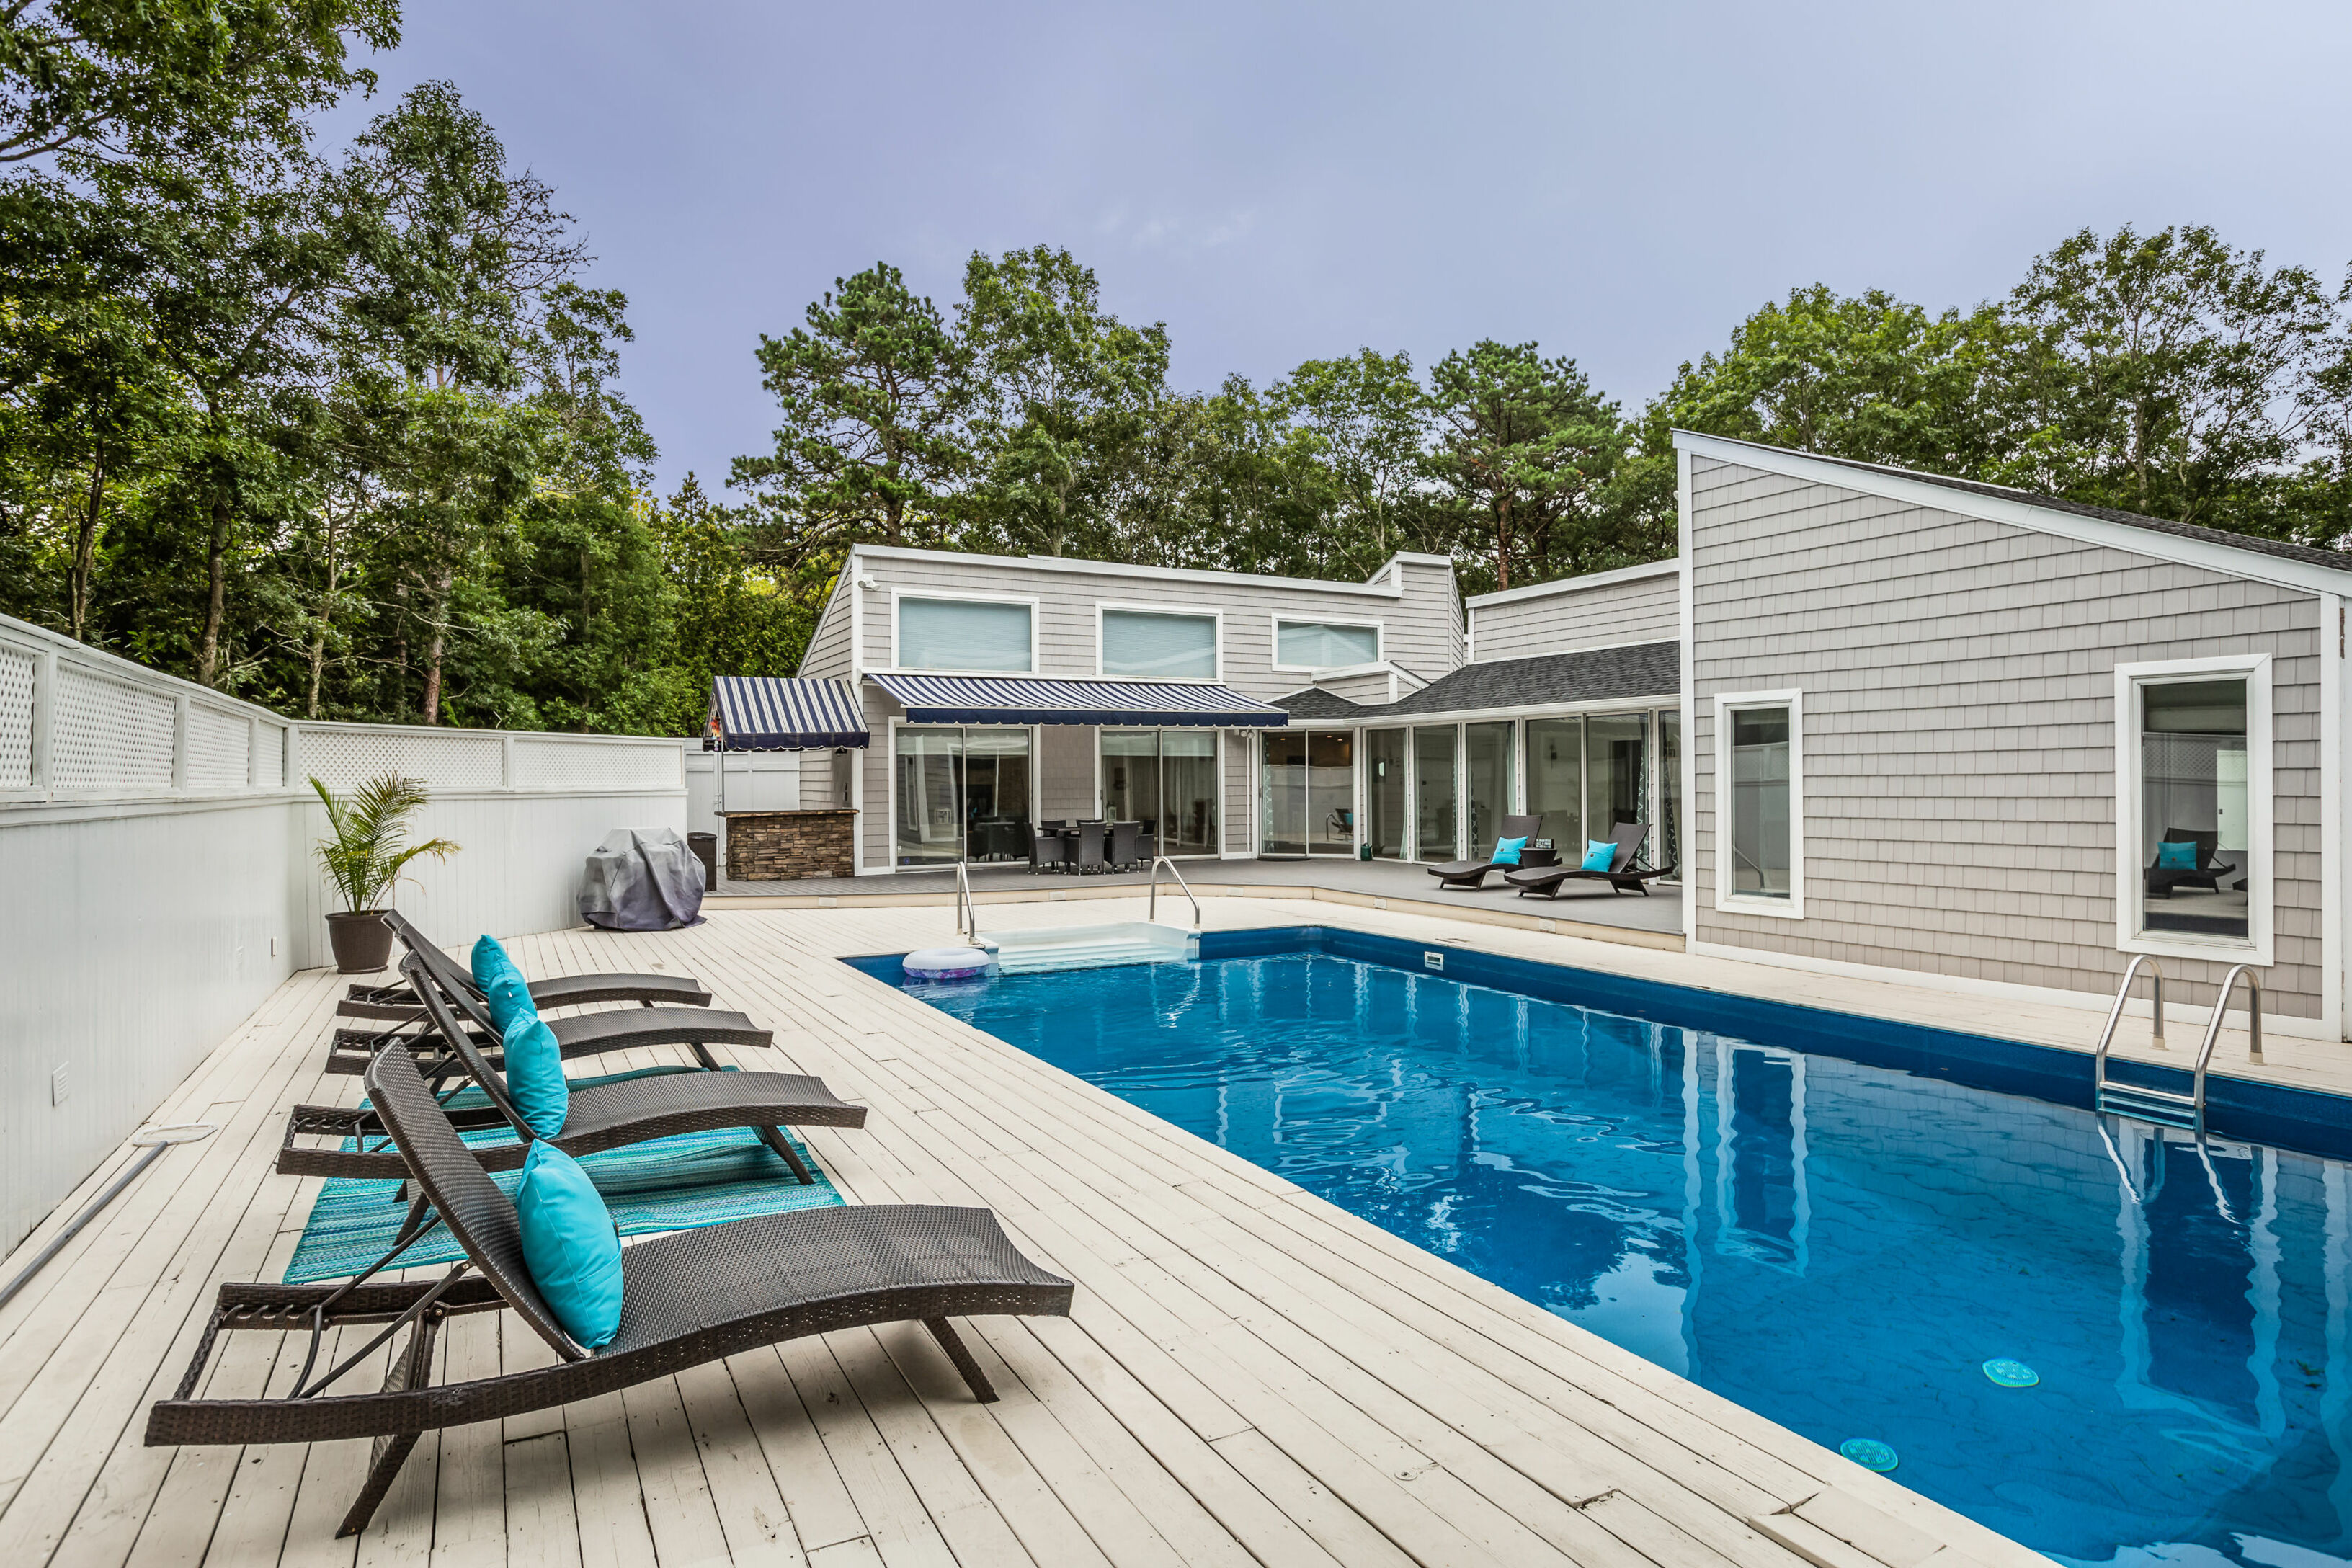 19 Deerfield East - Quogue North, New York